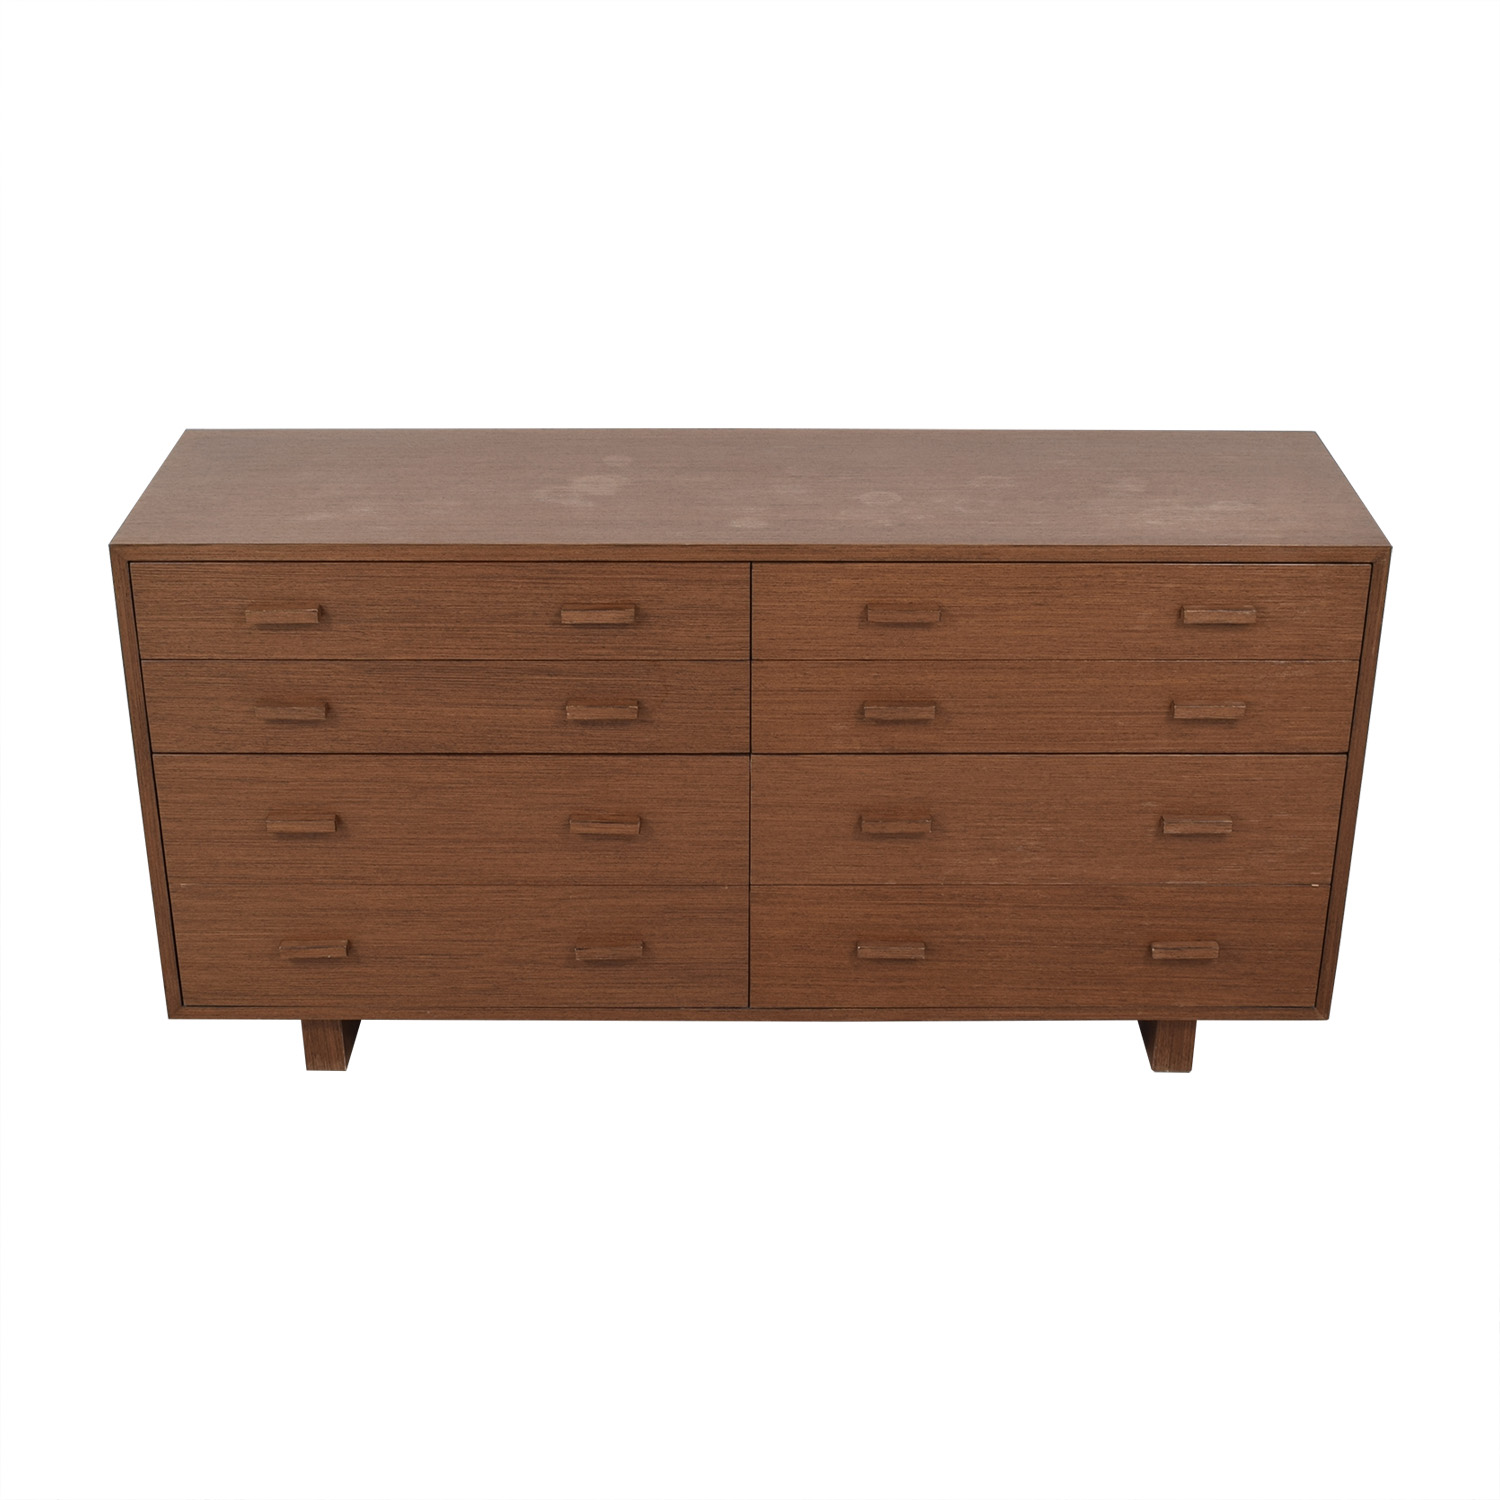 Room & Board Eight Drawer Dresser / Storage